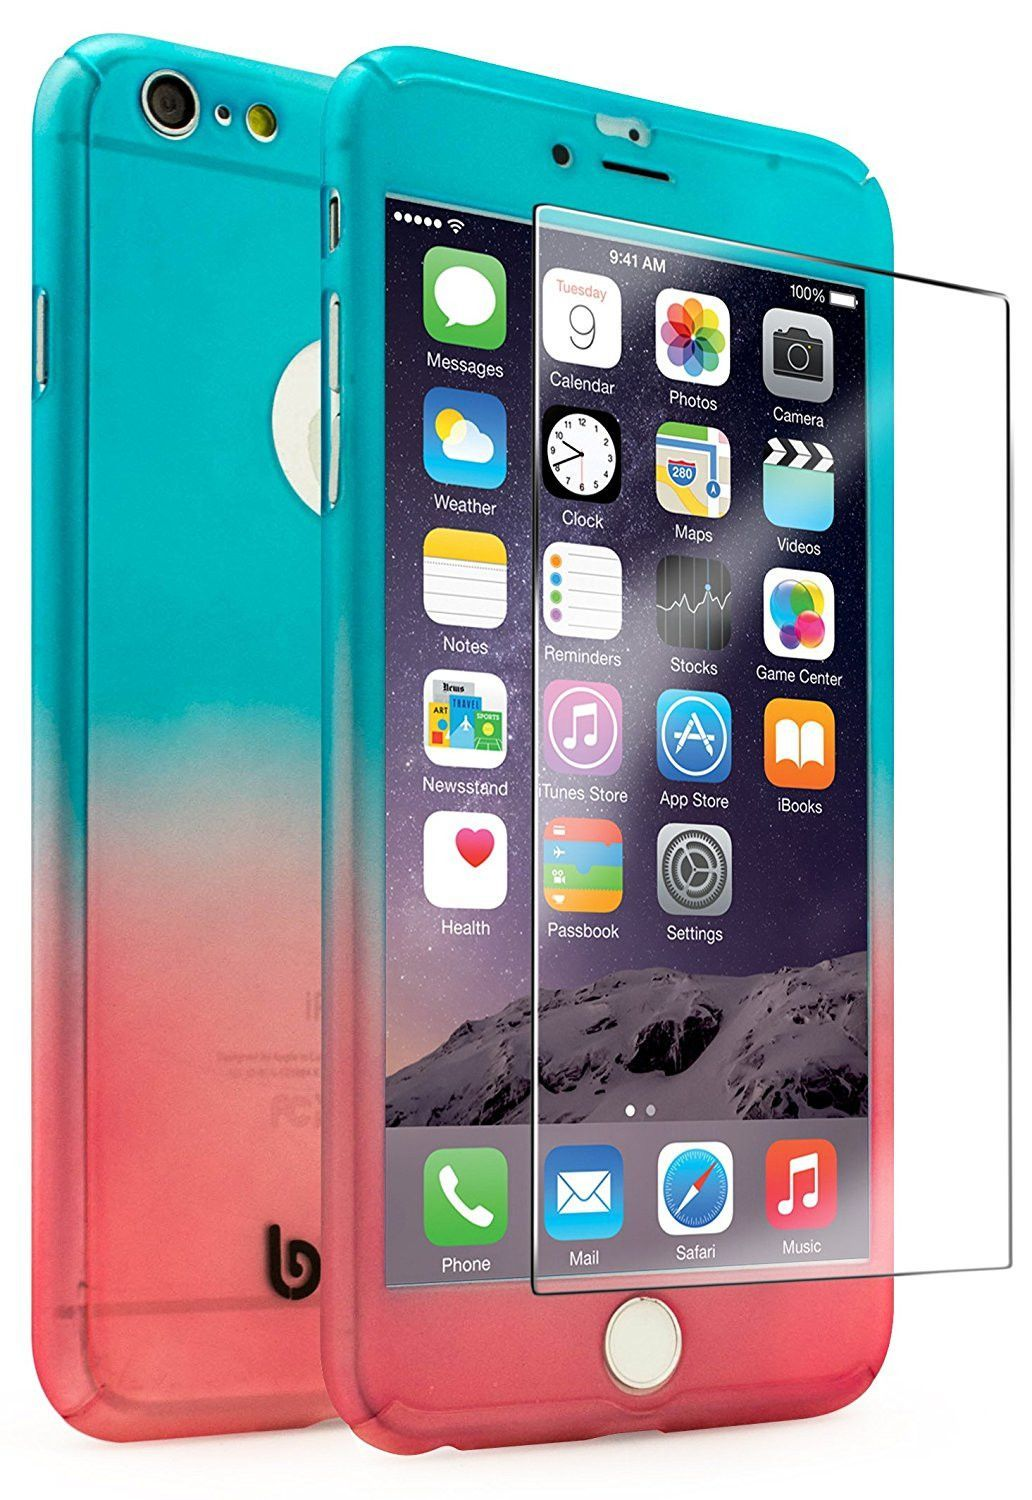 iPhone 6 Plus, Blue to Pink Fade Case With Tempered Glass Screen ...